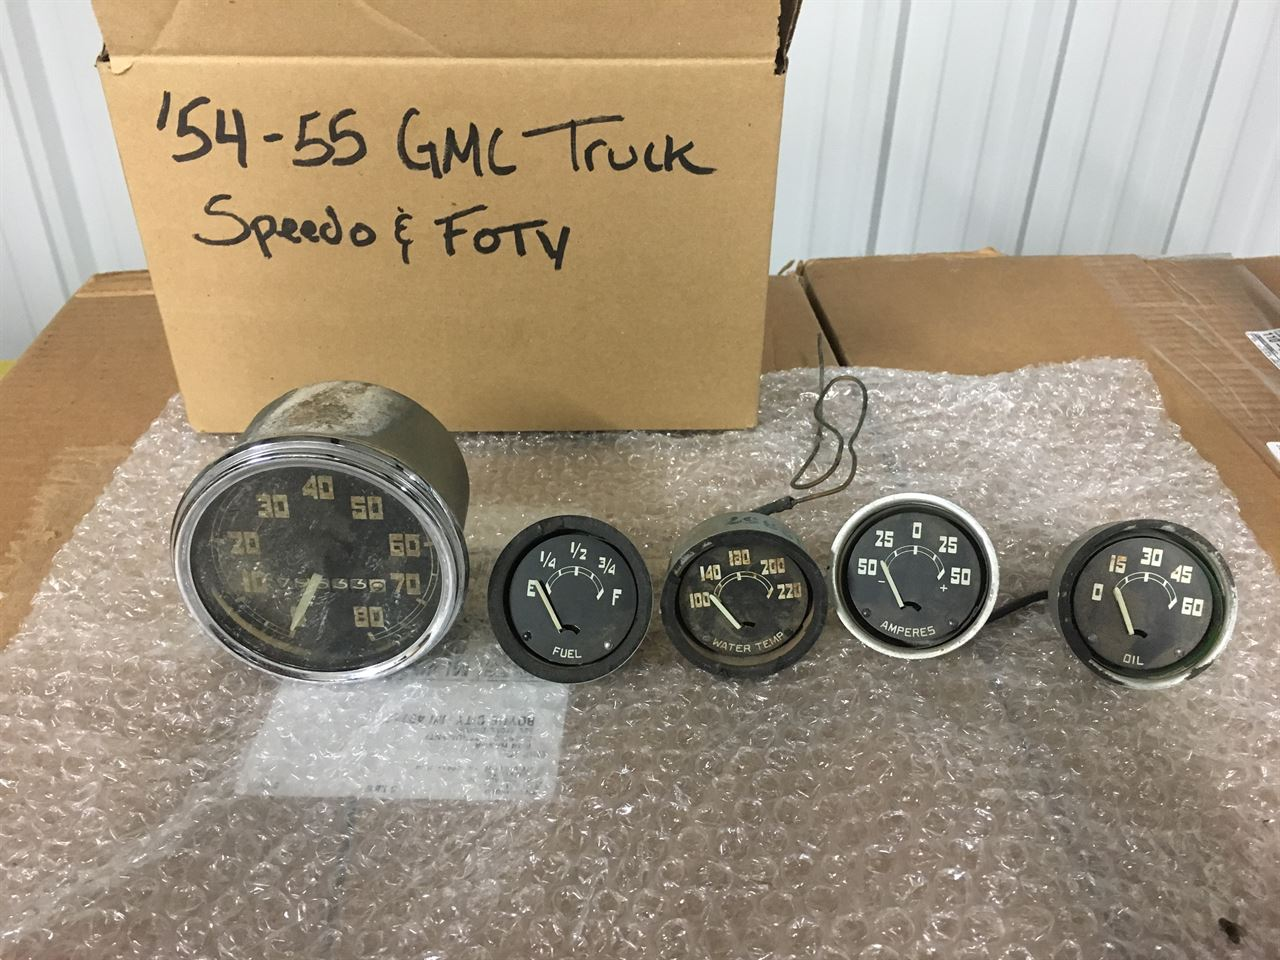 Picture of 1954-55 GMC Truck Speedo and FOTV